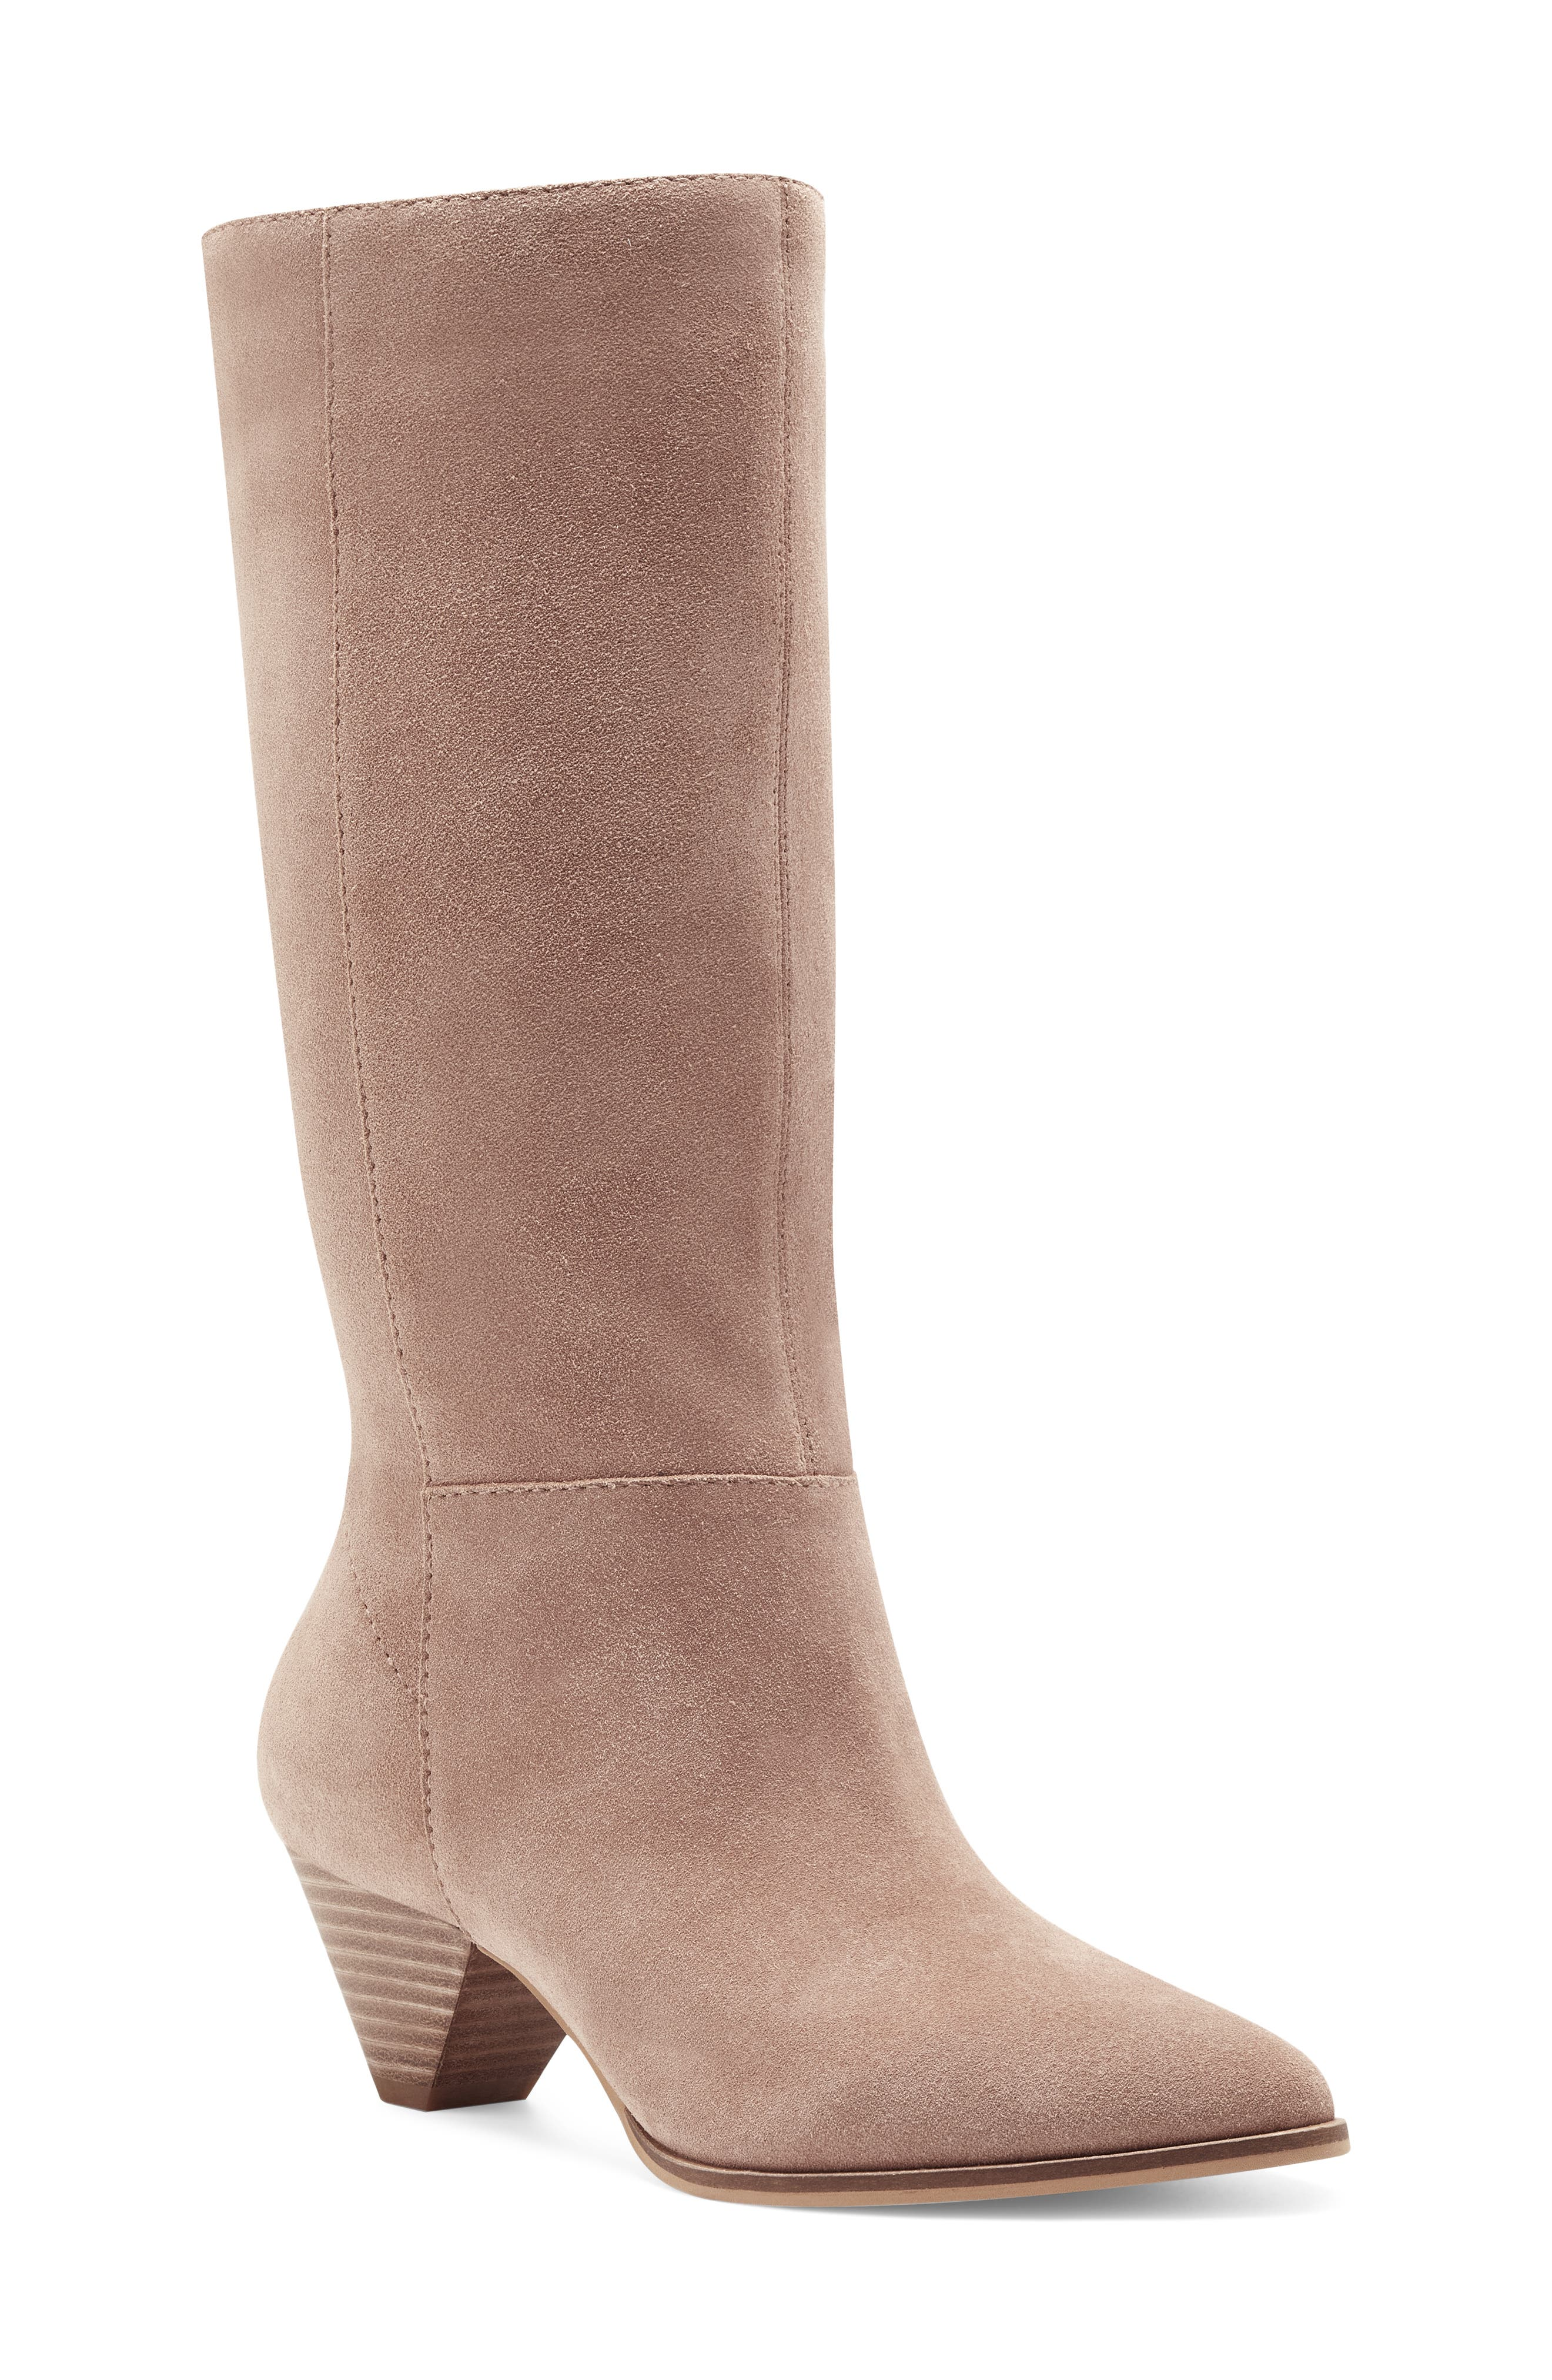 Lucky Brand Mid-Calf Boots   Nordstrom